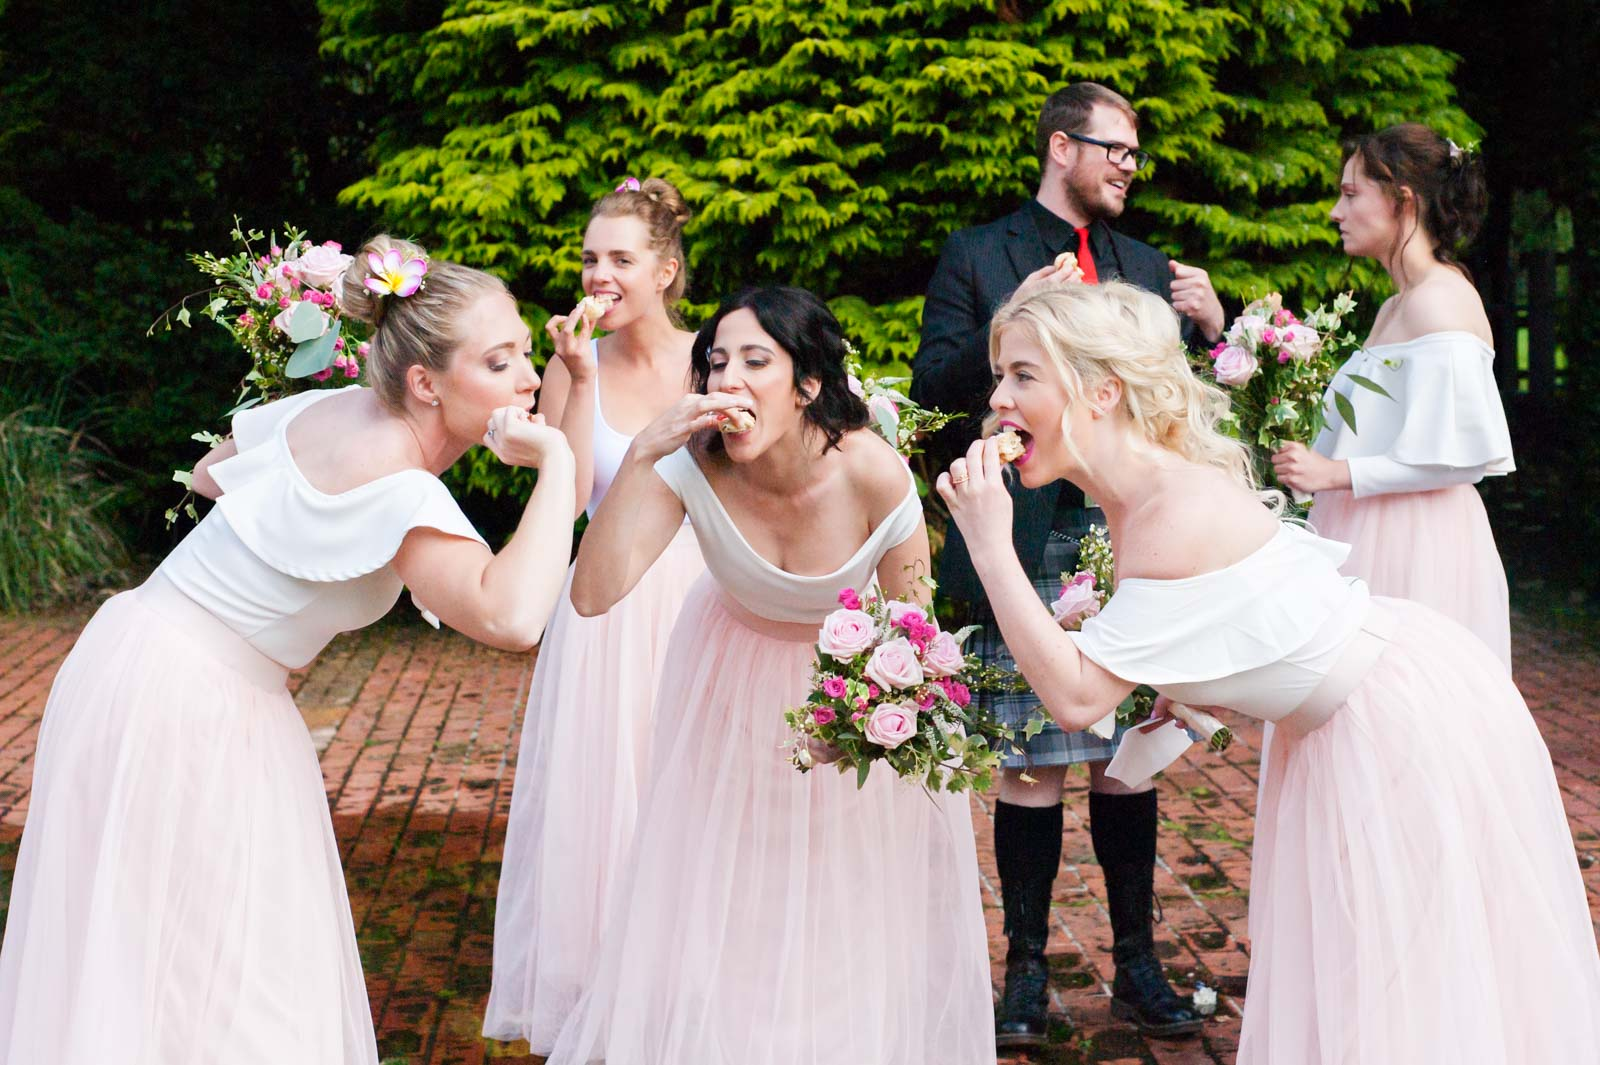 Bridesmaids being silly with cakes